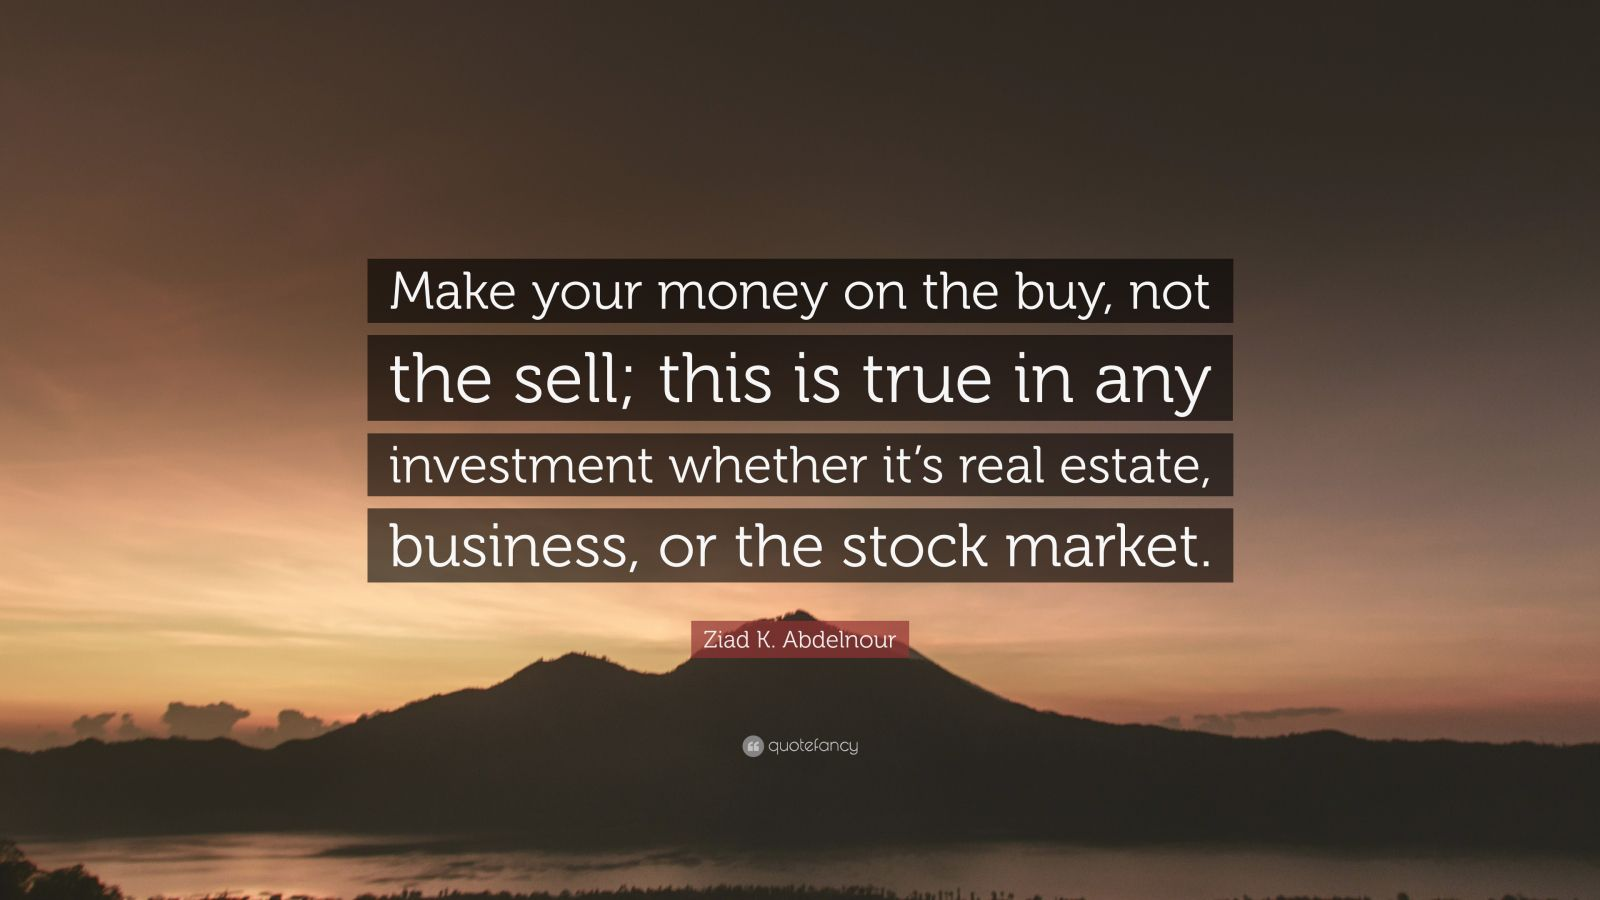 """Ziad K. Abdelnour Quote: """"Make your money on the buy, not the sell; this is true in any investment whether it's real estate, business, or the stock market."""""""